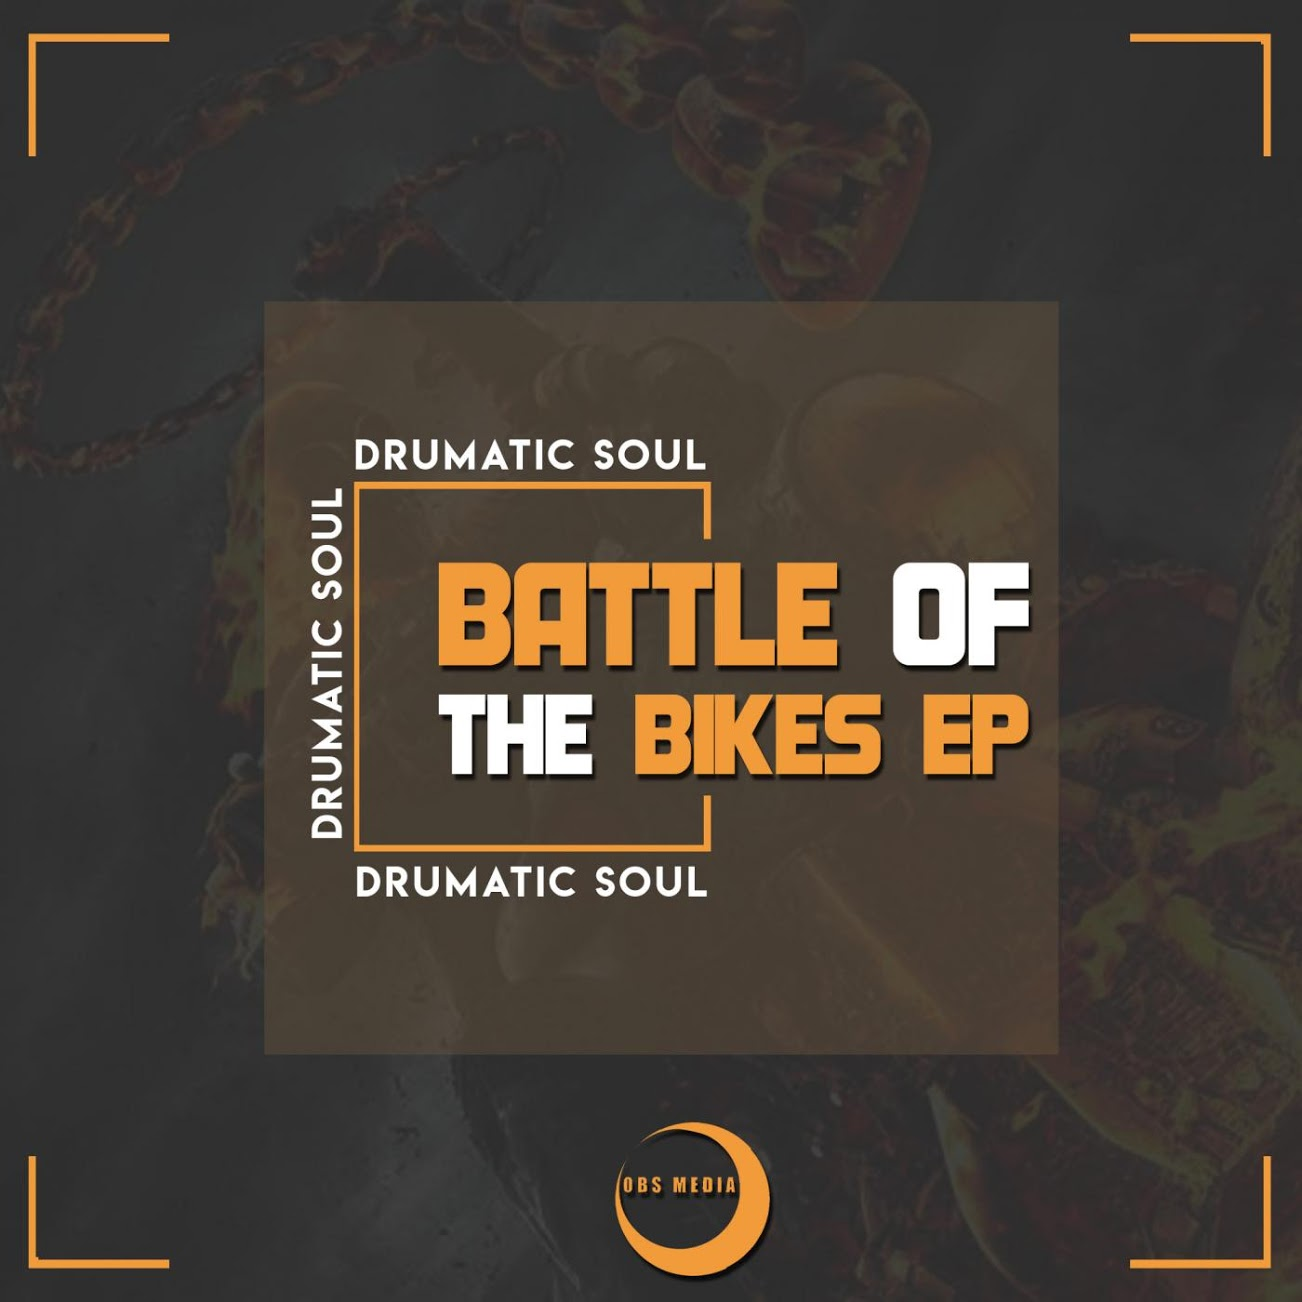 Drumatic Soul Battle Of The Bikes EP - EP:Drumatic Soul – Battle Of The Bikes